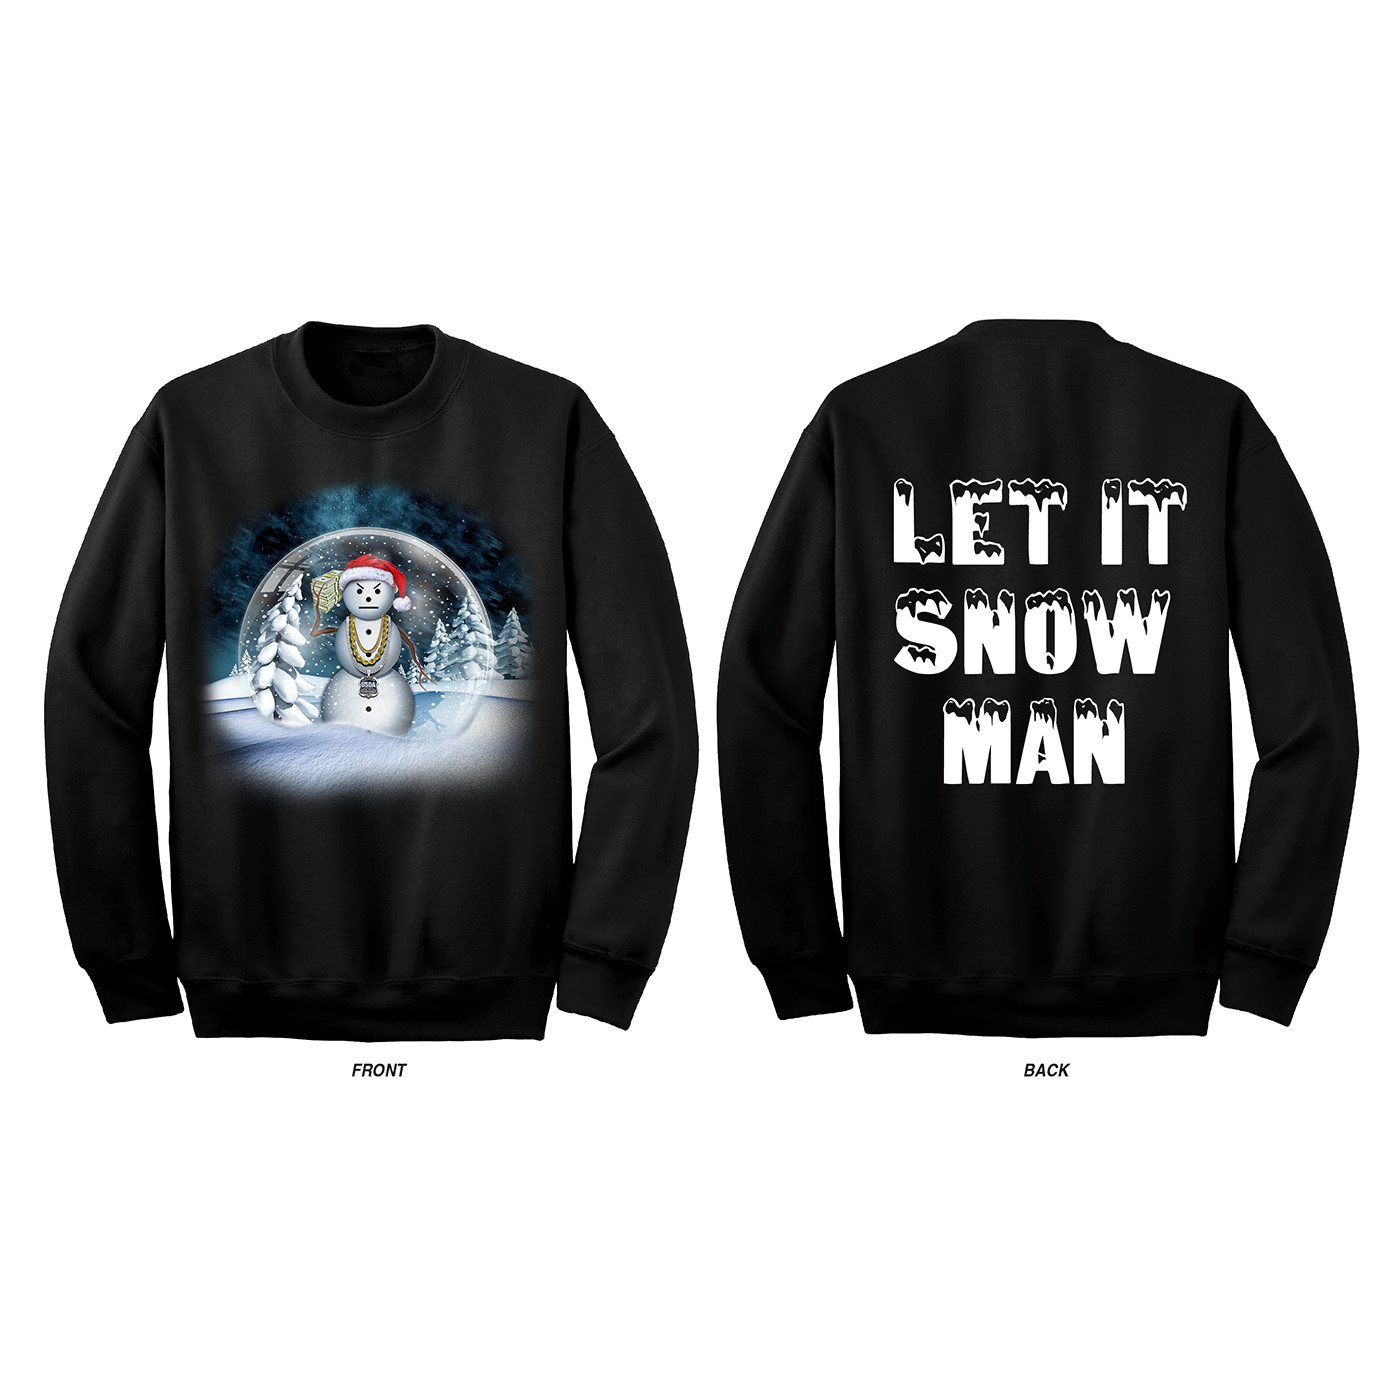 Jeezy Holiday Sweater - Retail Apparel